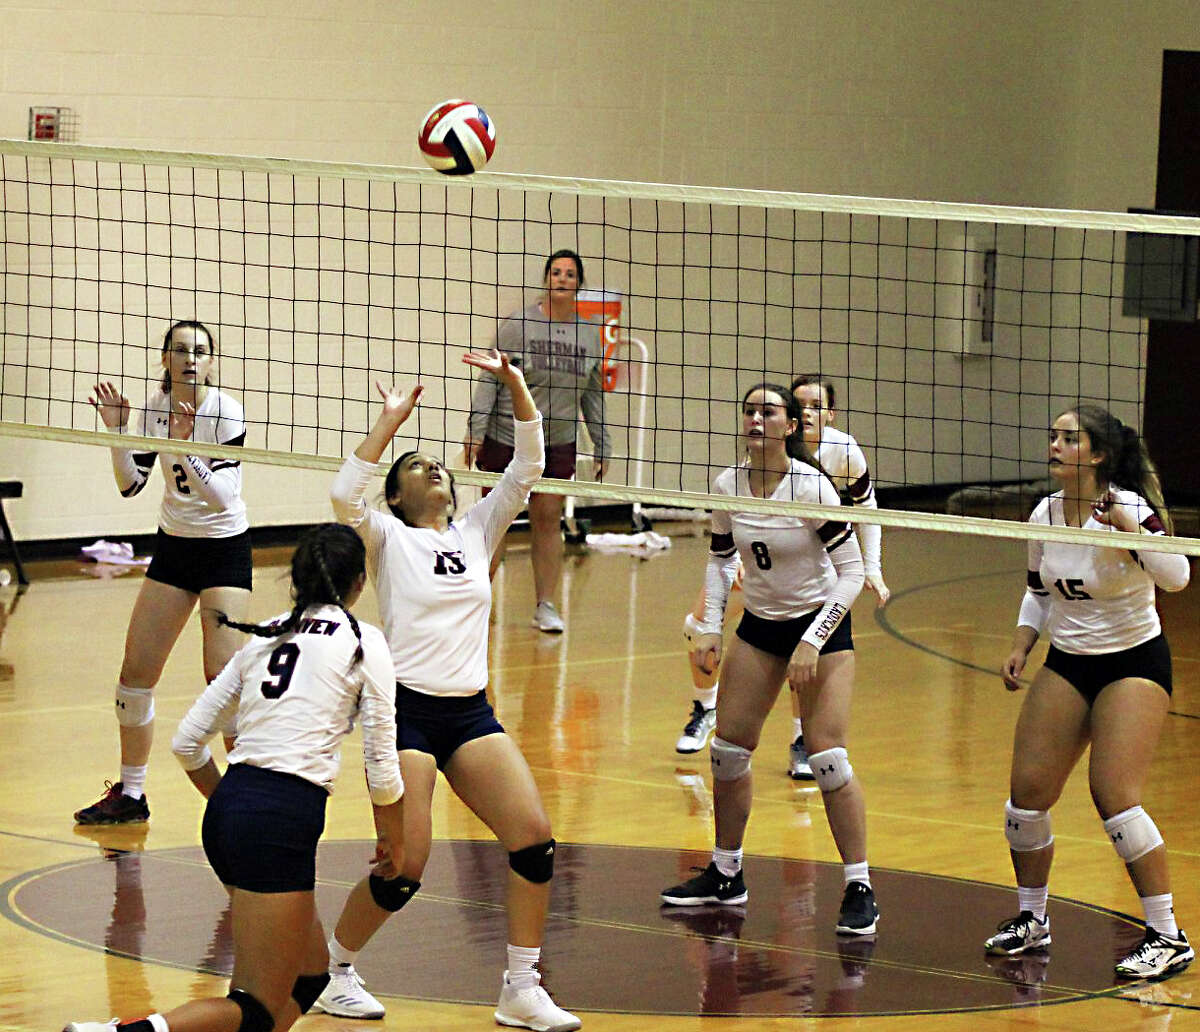 THE SETUP Plainview senior Christen Gonzalez puts up a set assist for senior Kayla Soto (9) during the Princeton Tournament on Saturday in Princeton. The Lady Bulldogs won the silver bracket championship with a 27-25, 25-20 win over Sherman.